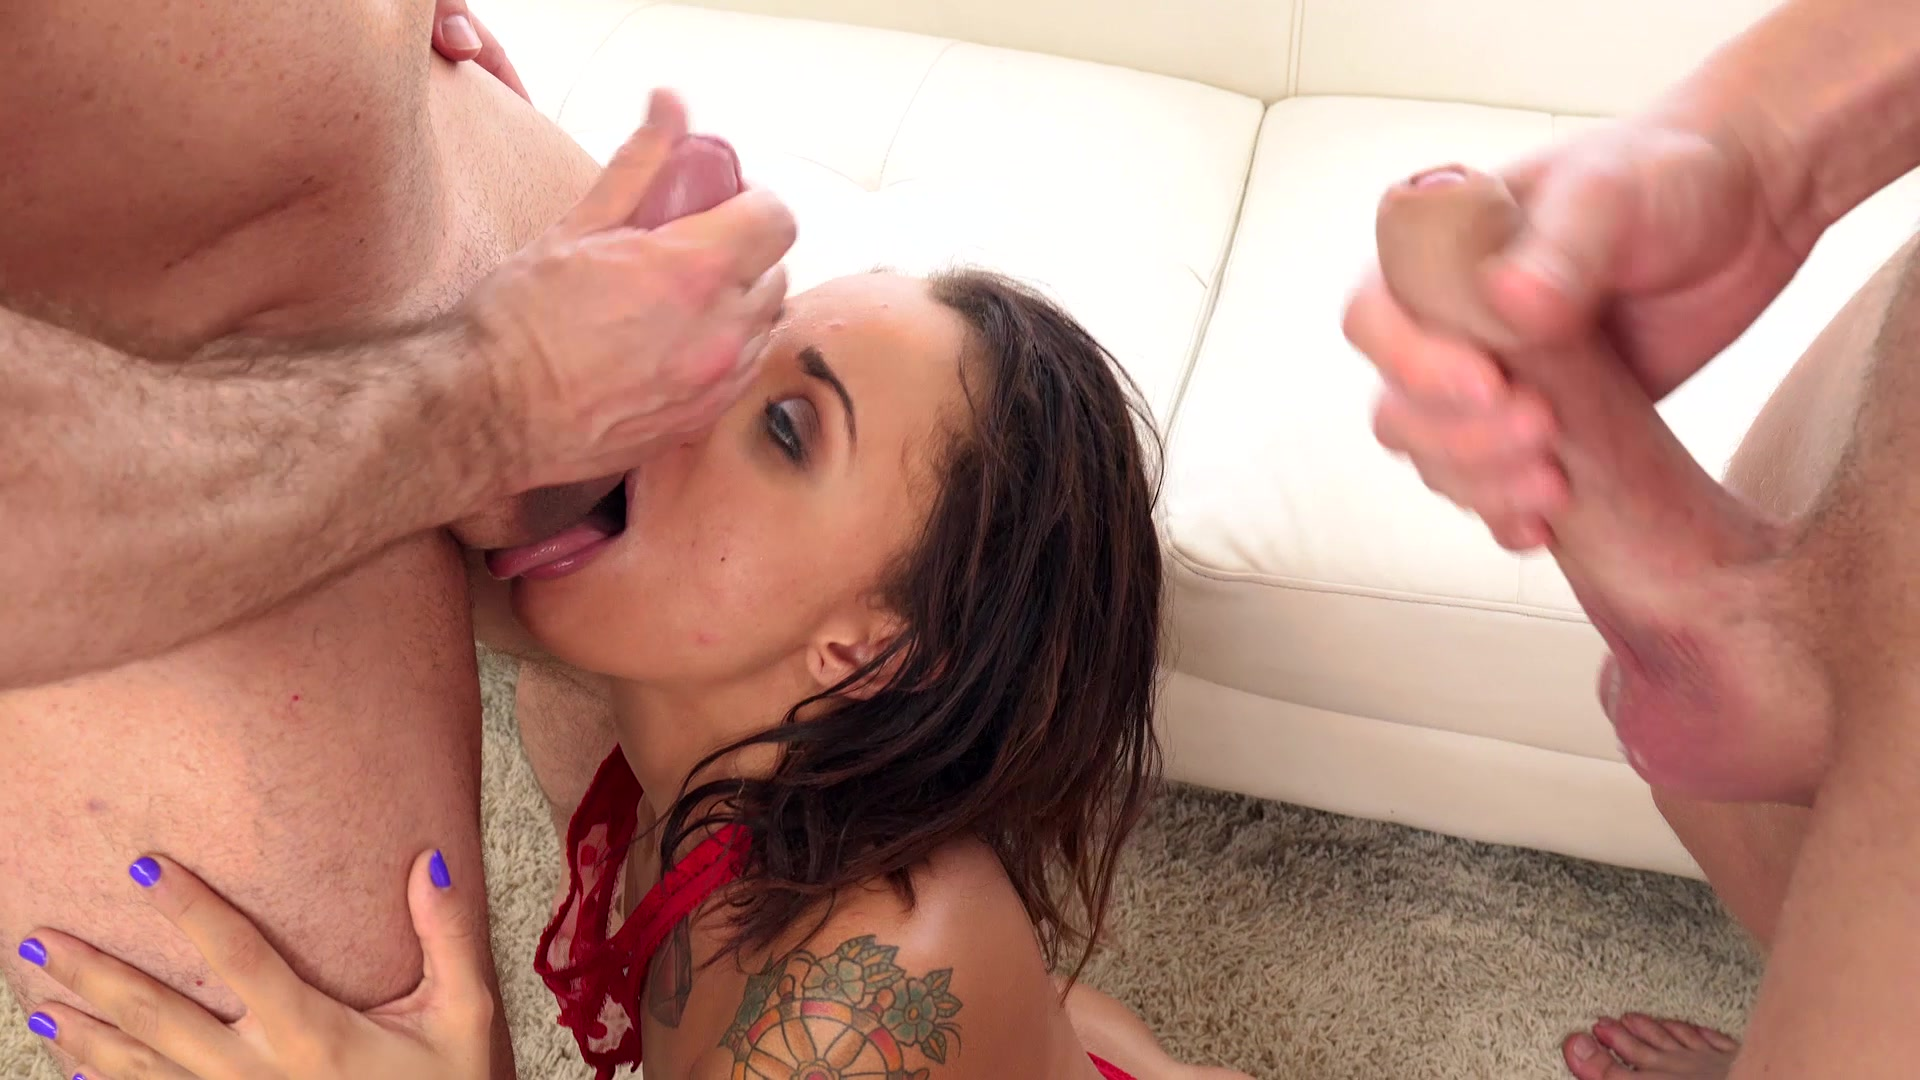 Scene with Holly Hendrix - image 19 out of 20